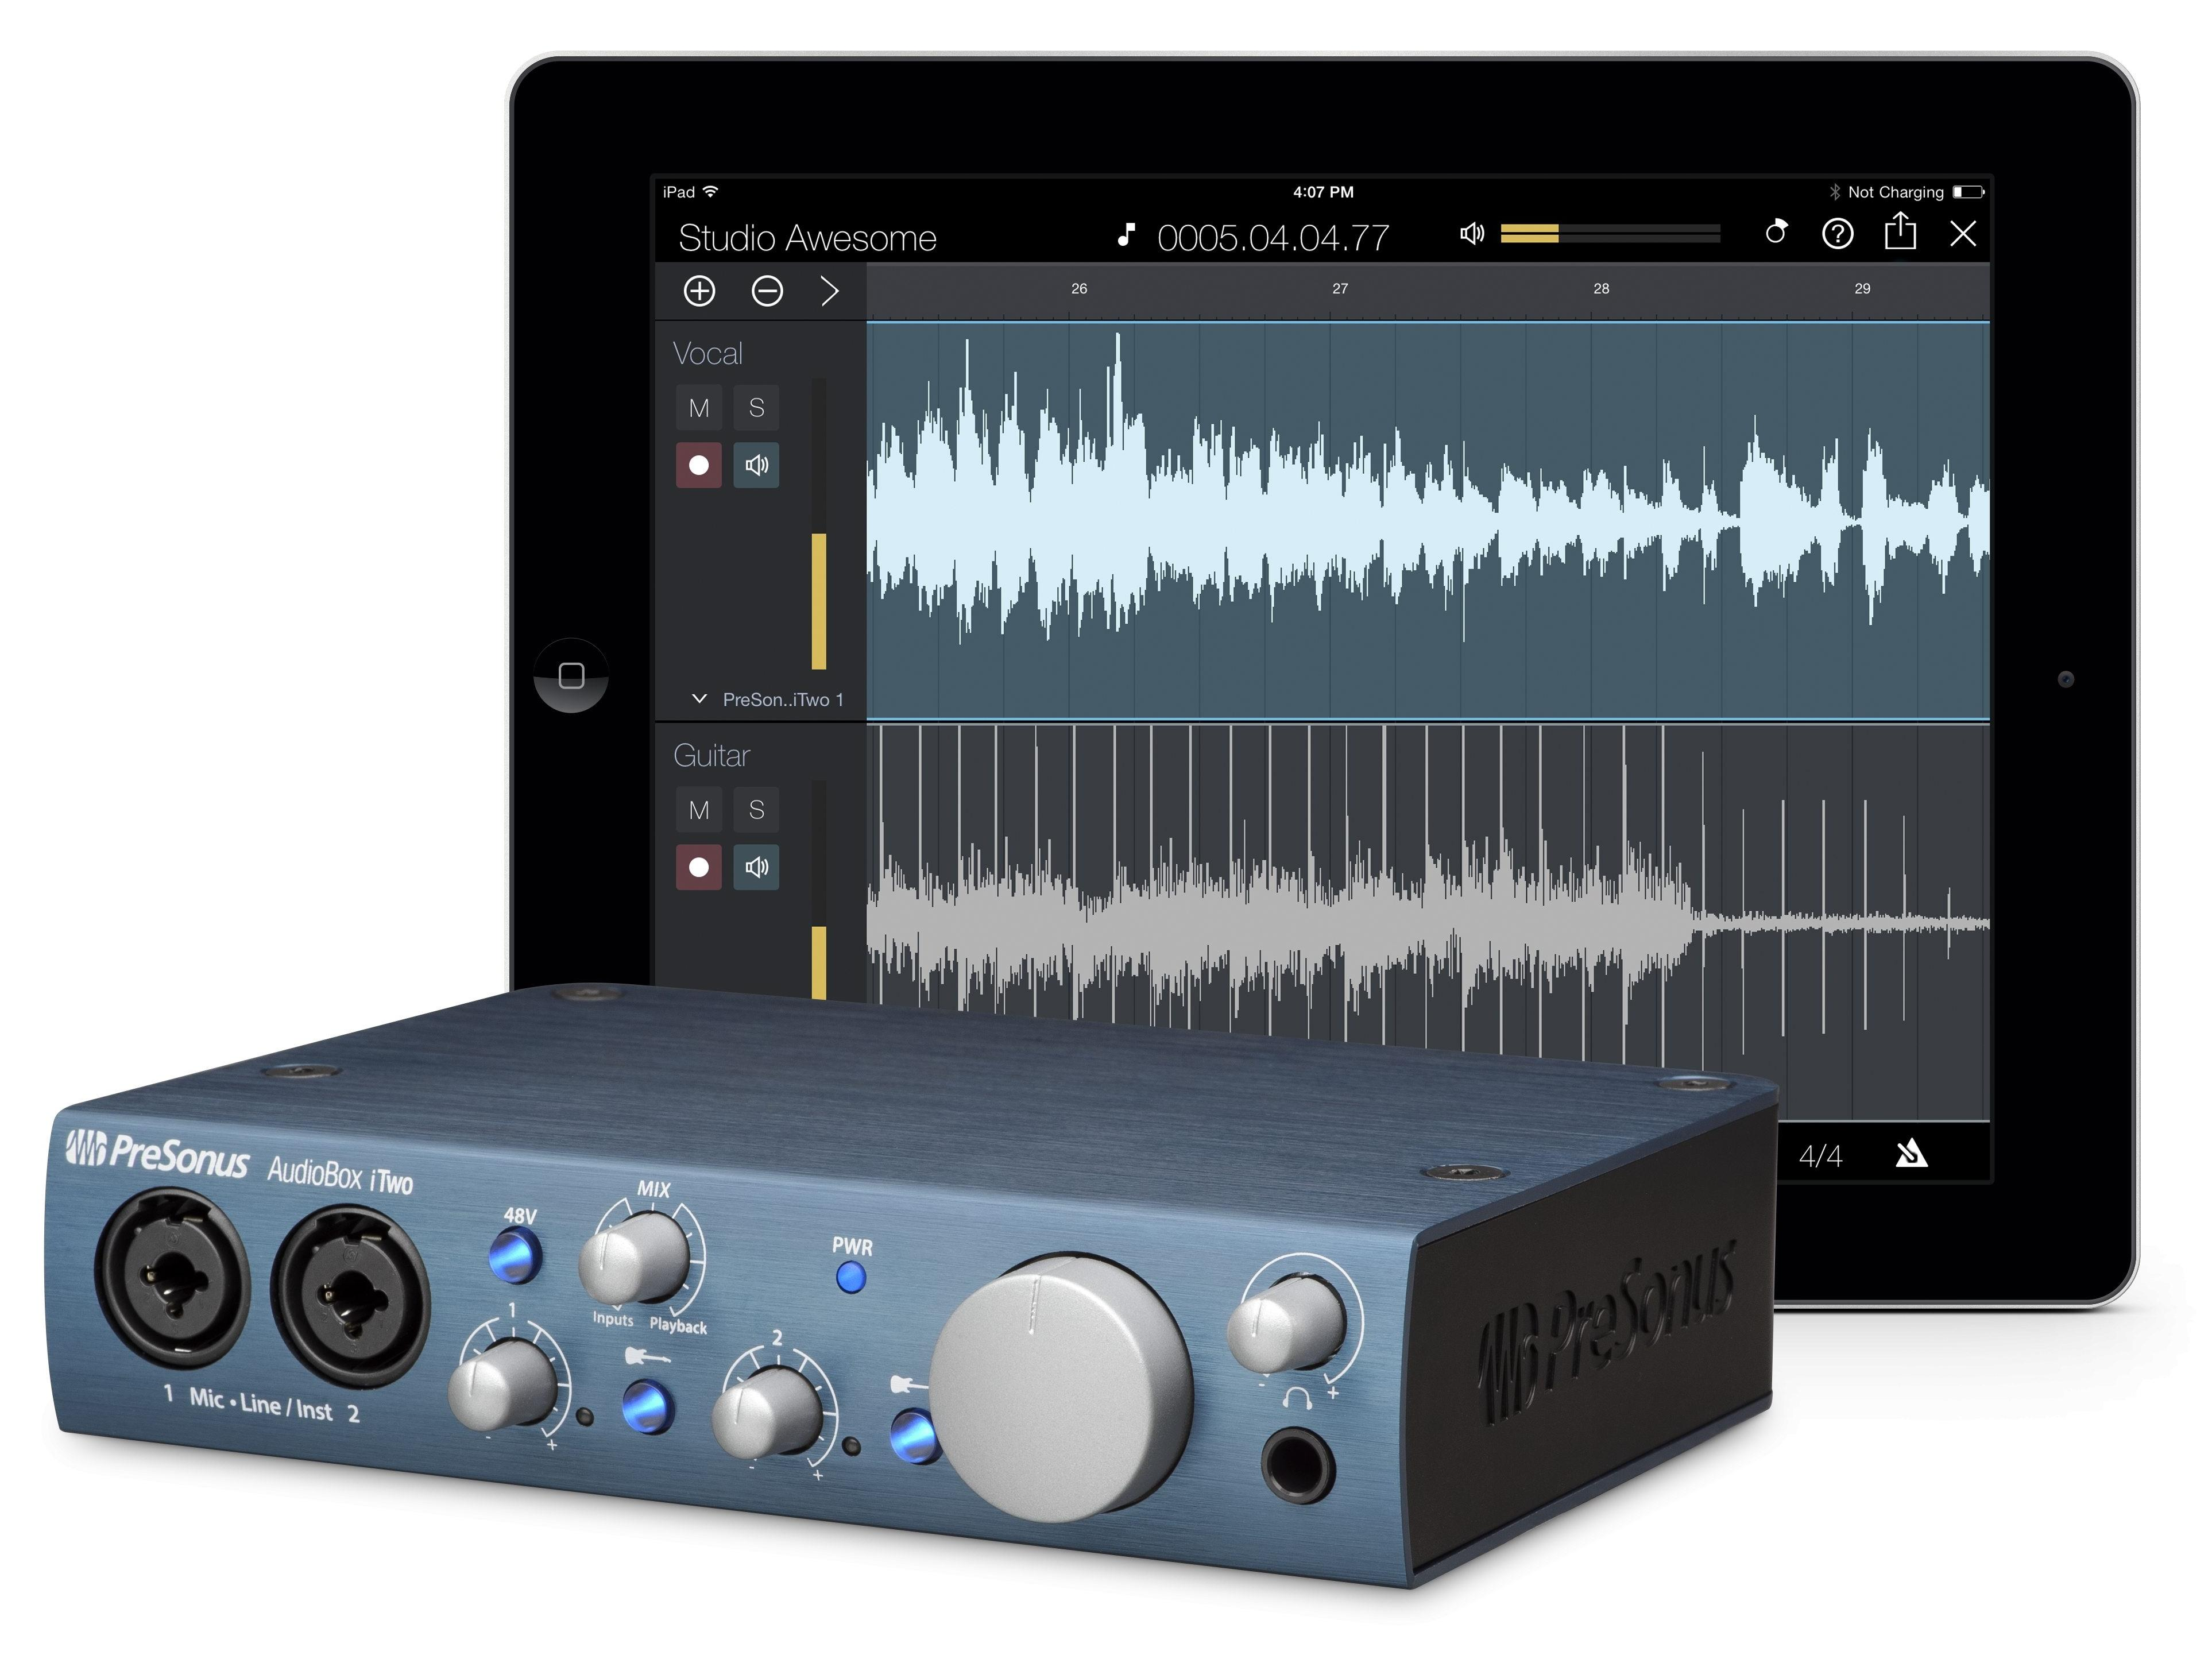 AudioBox iTwo 2x2 USB 2.0 Recording System/iPad Audio Interface w 2 Mic Inputs and MIDI by PreSonus